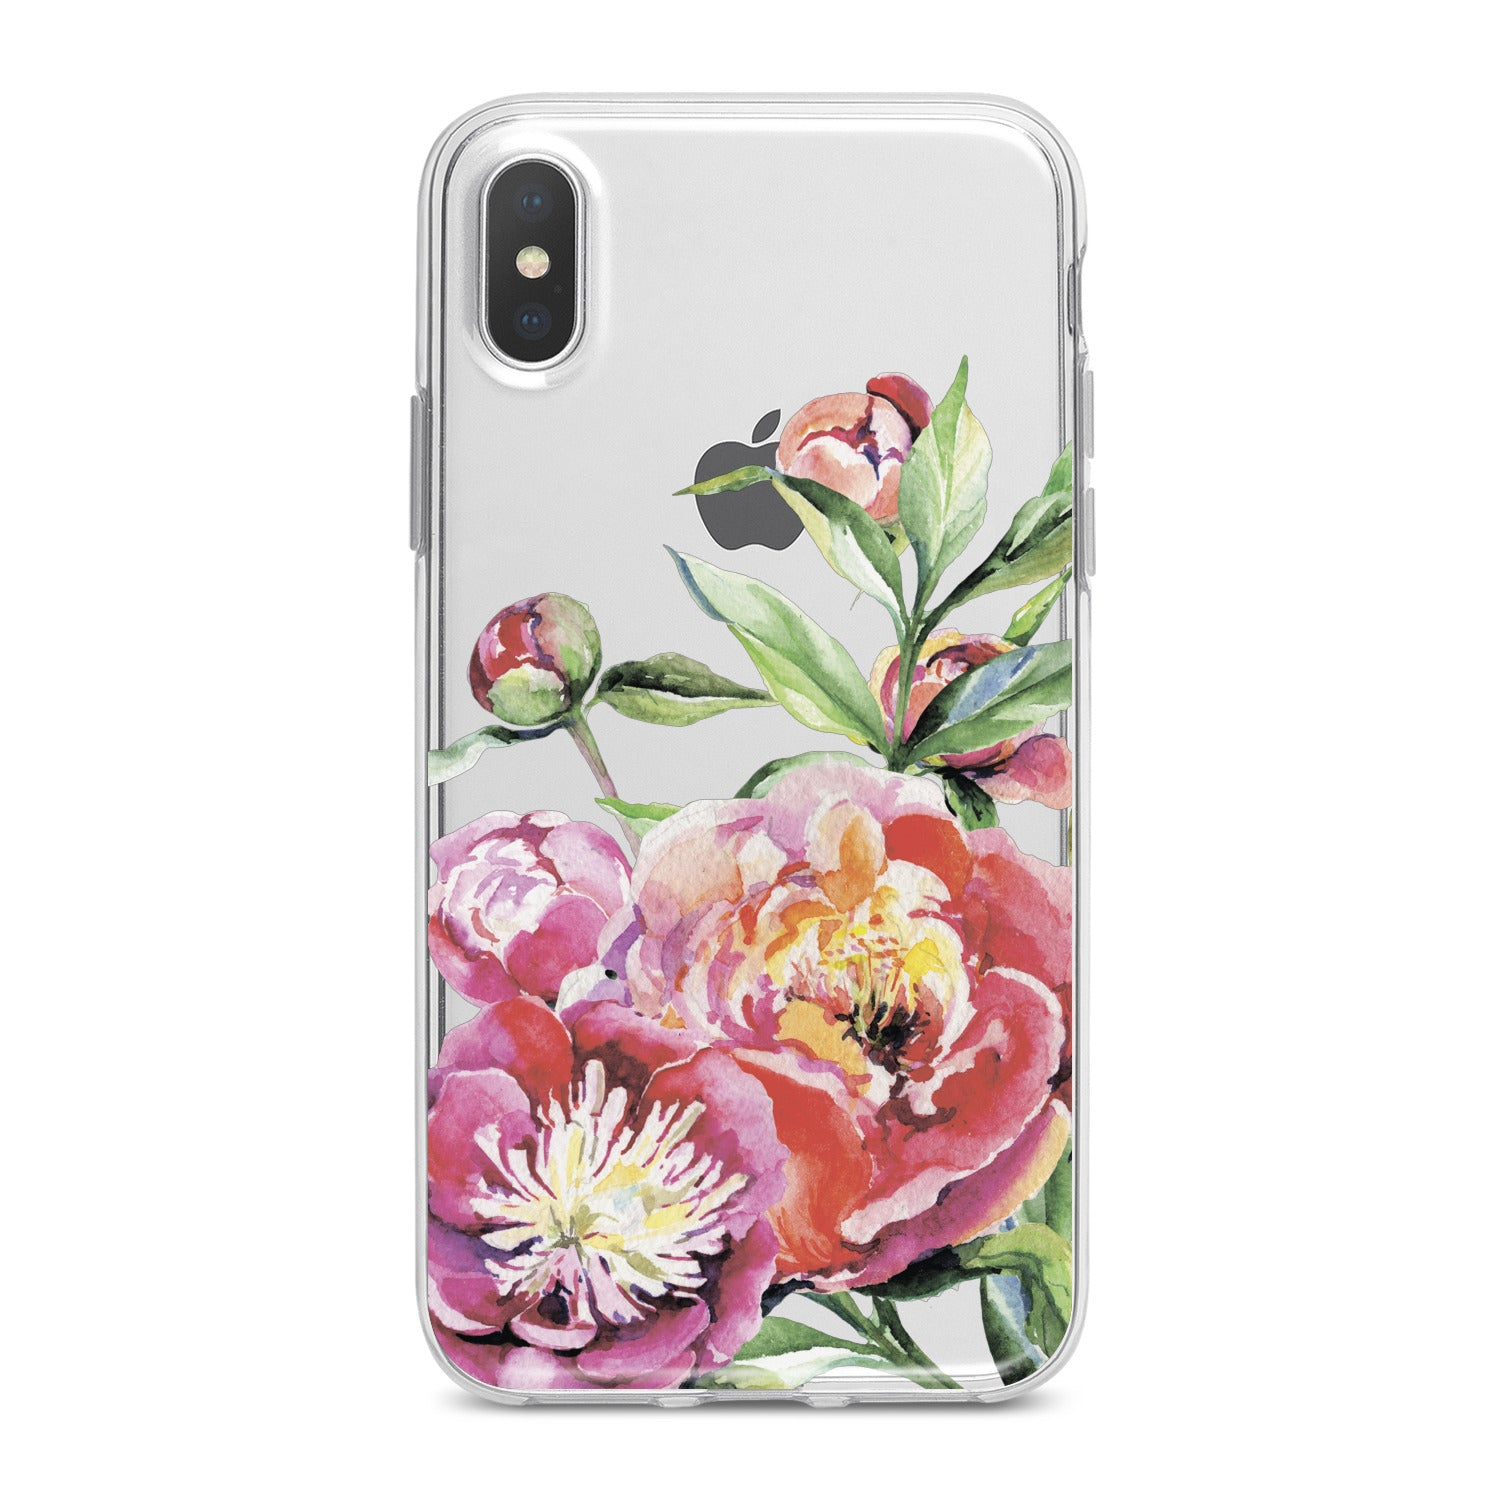 Lex Altern Garden Peony Pattern Phone Case for your iPhone & Android phone.